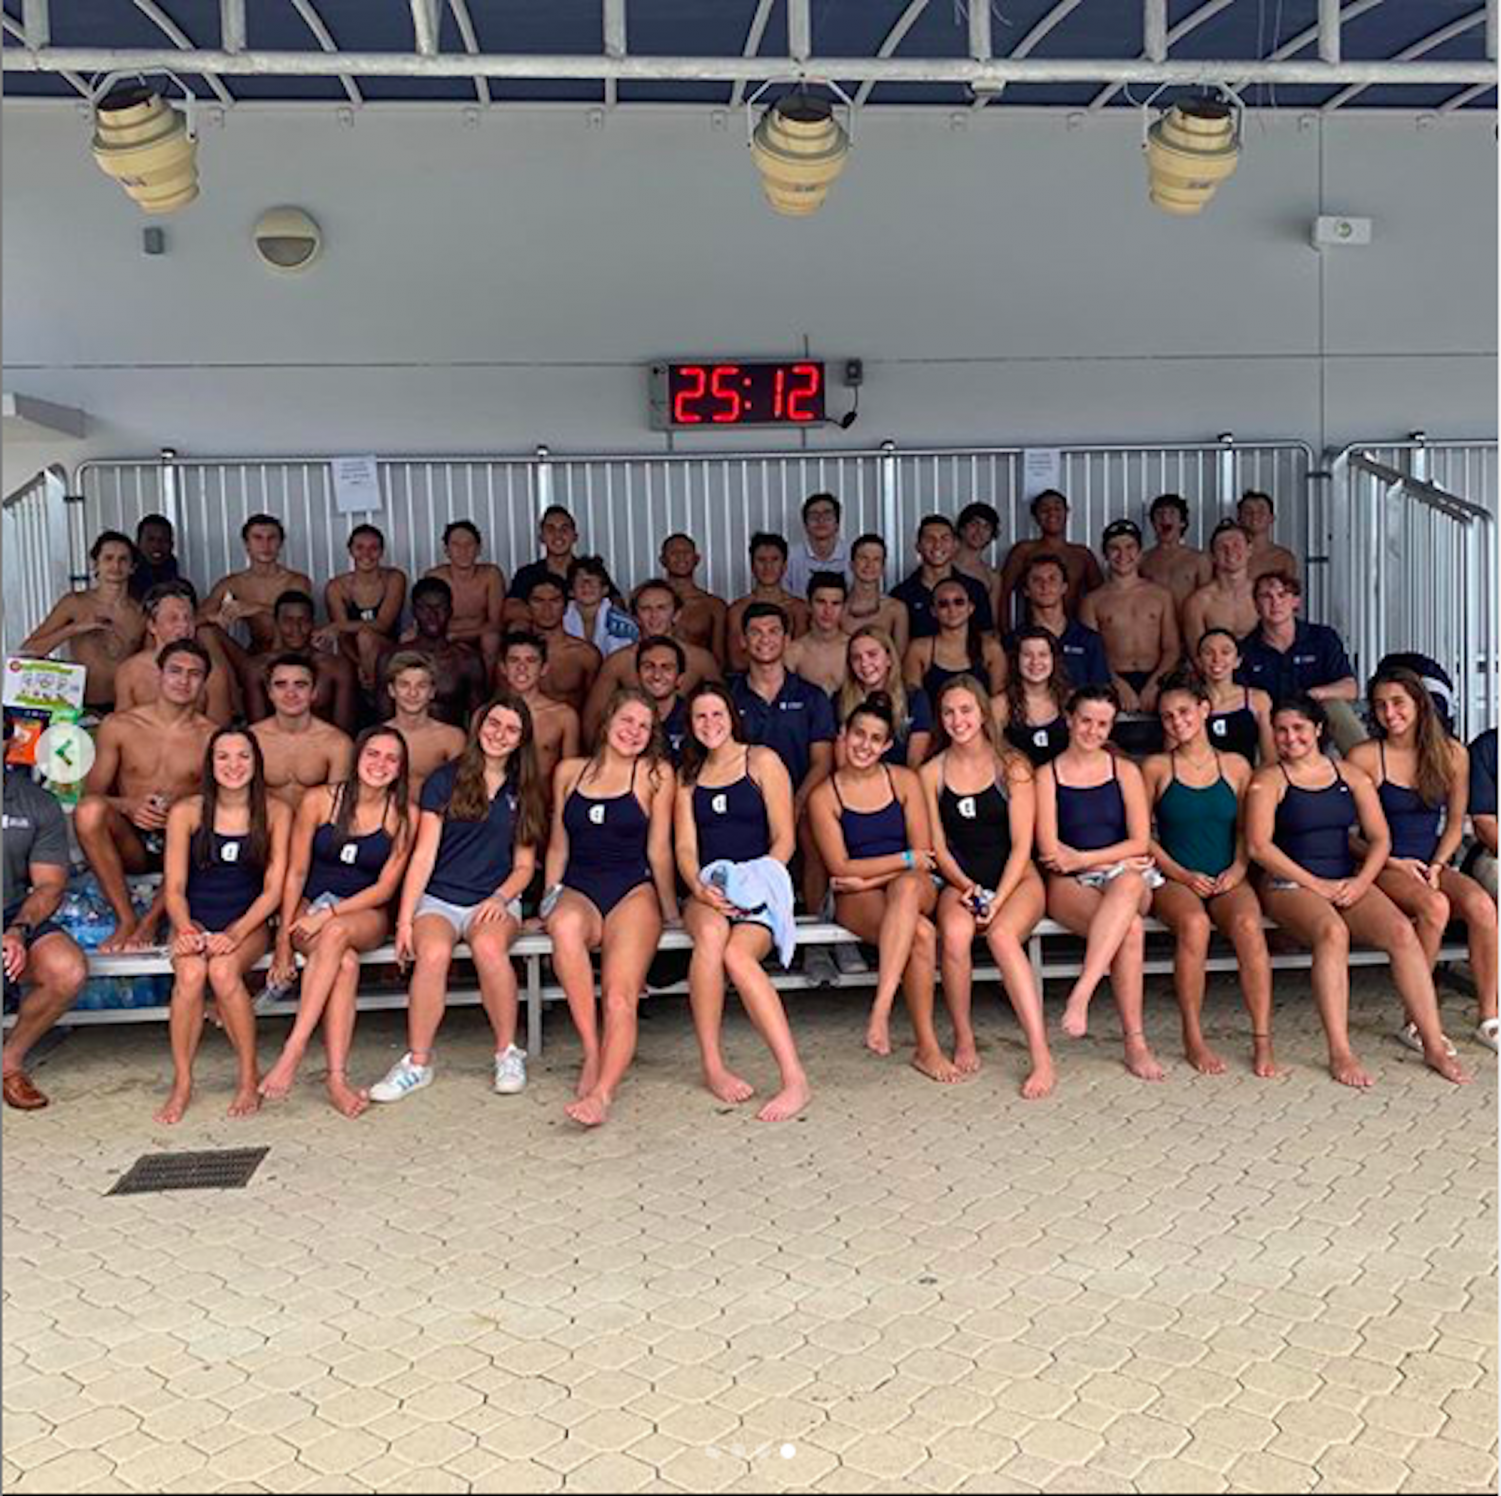 The boys and girls swimming teams ended their season on a high note with their meet against Ransom on Monday, Oct 7. The meet was a big success because the Raiders won all of their individual races and relays. They will continue into the postseason at the Palm League Championships on Saturday, Oct 12 at 1 p.m.